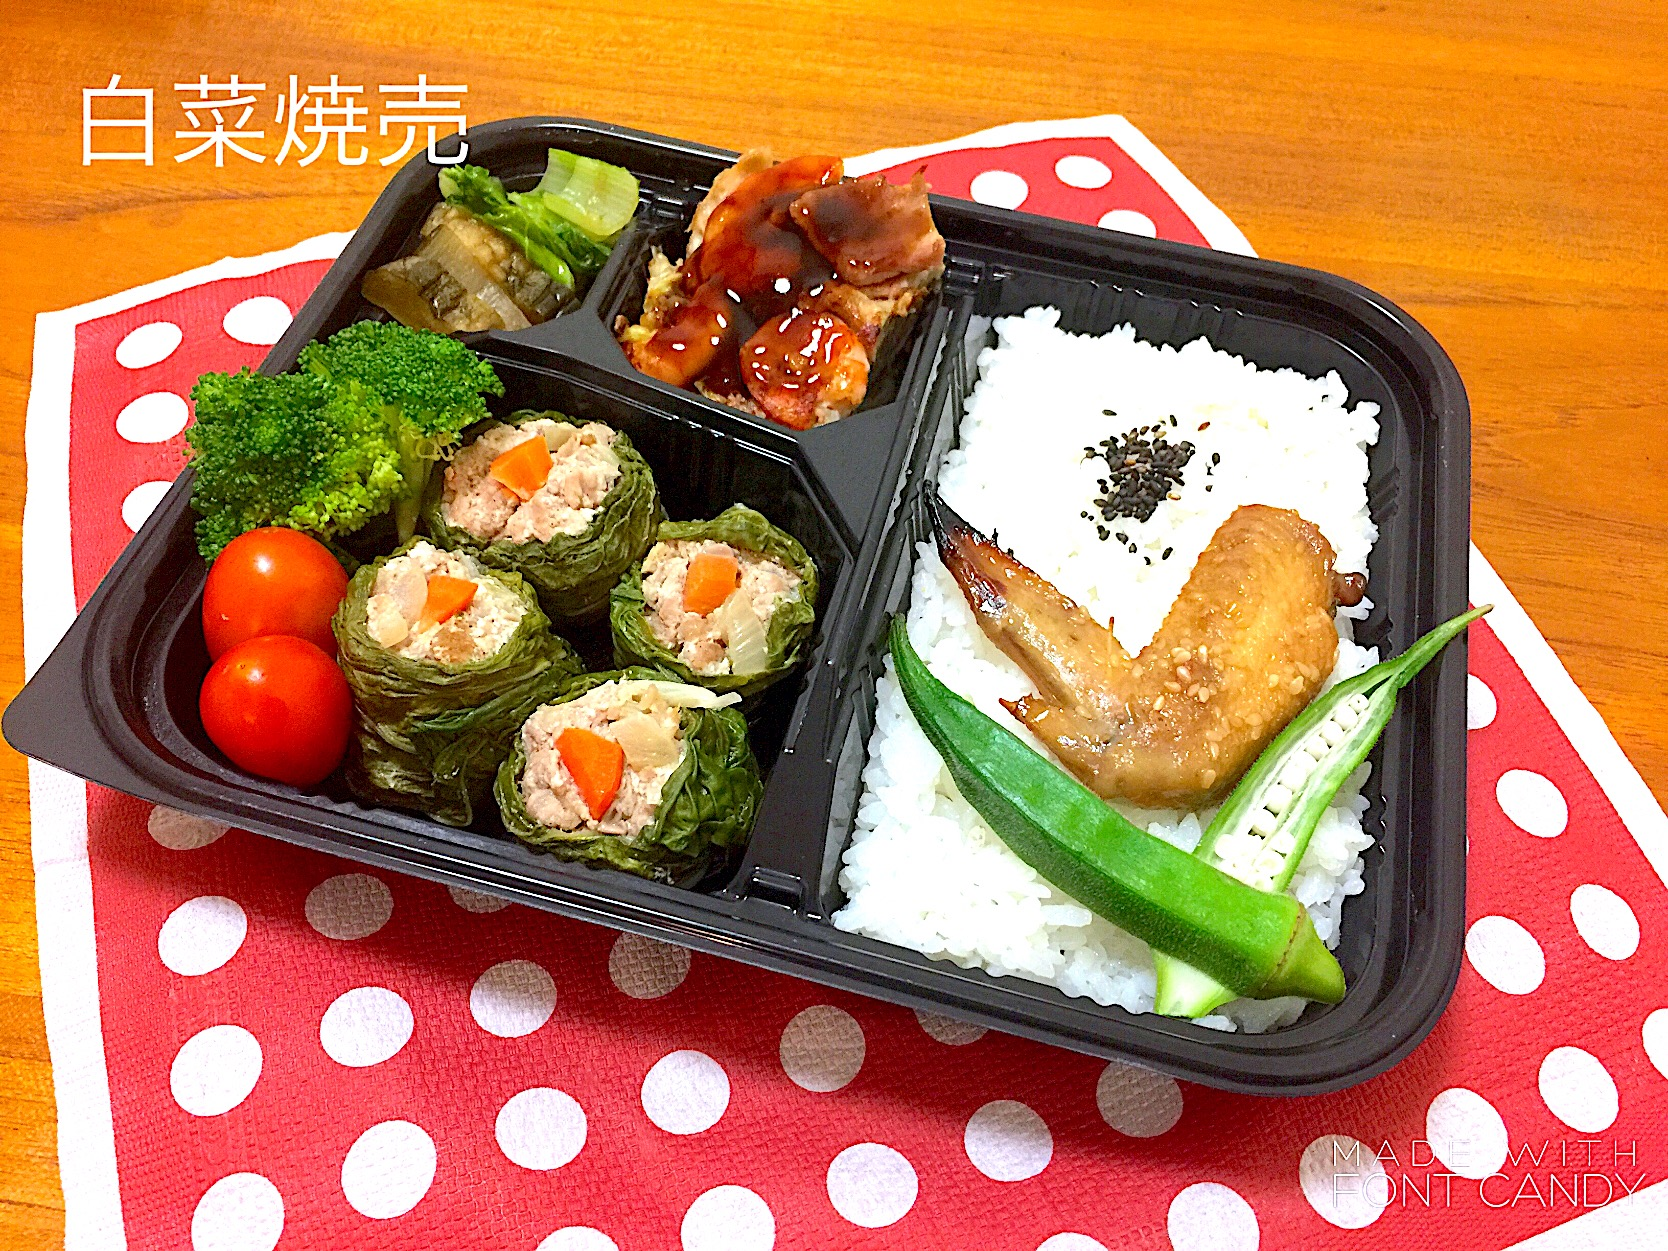 A bento created with homegrown veggies